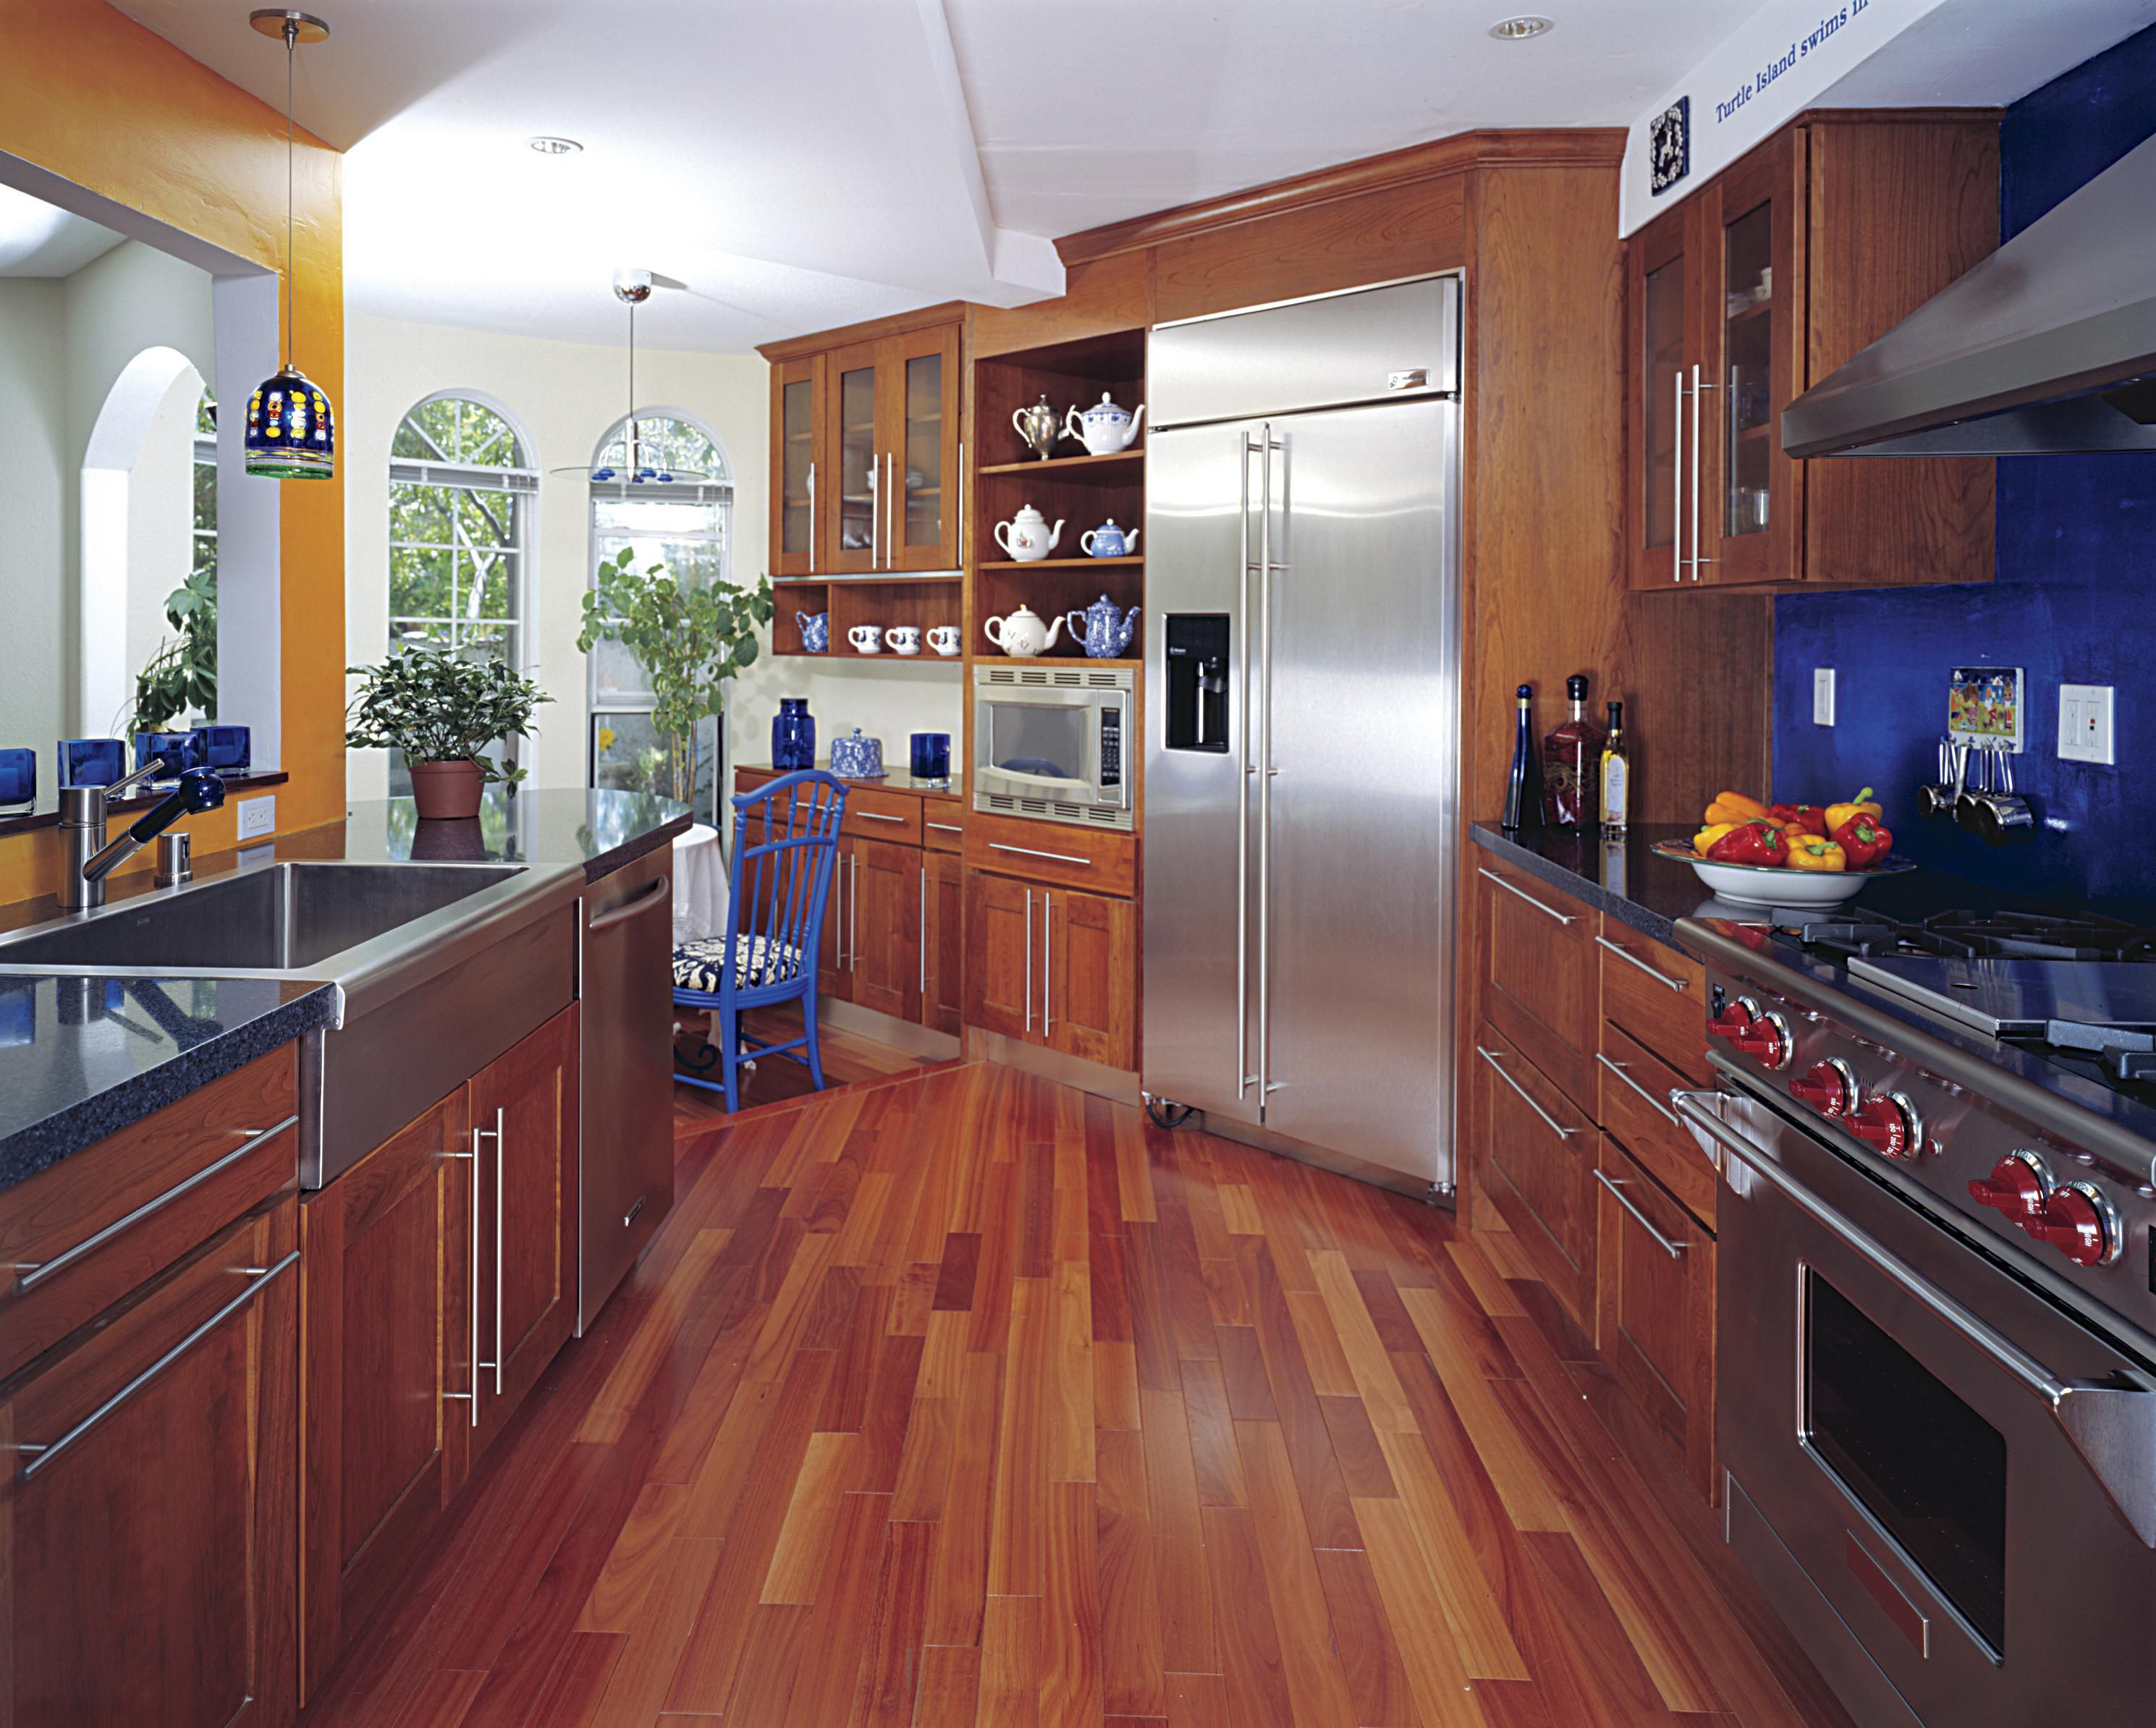 repair kit for hardwood floor of hardwood floor in a kitchen is this allowed with regard to 186828472 56a49f3a5f9b58b7d0d7e142